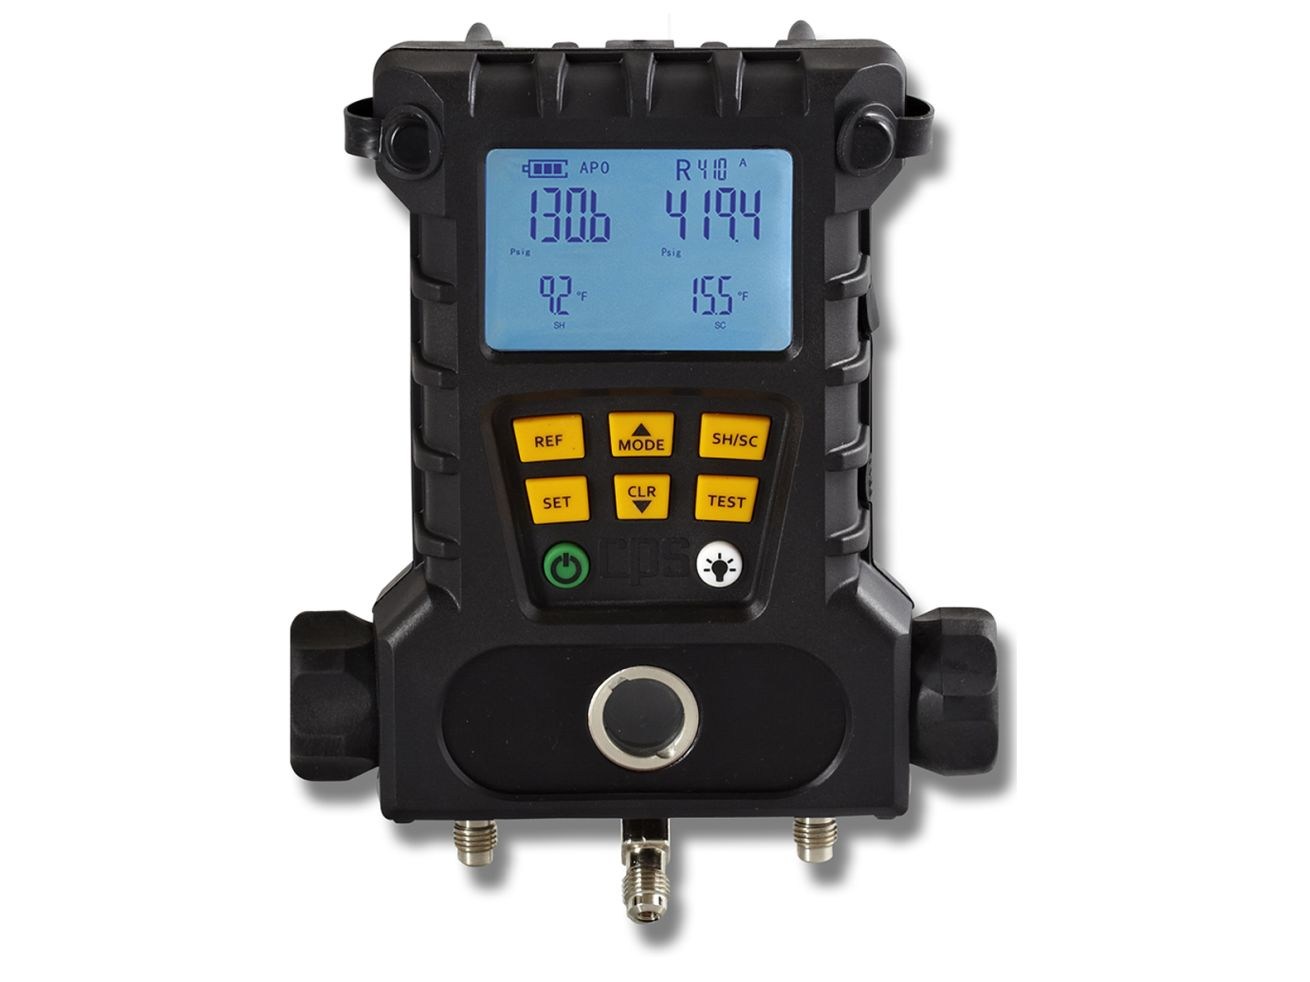 Manifolds And Gauges Manifold Value R22 Single Gauge Accurate Md50 Series Blackmax 2 Valve Digital